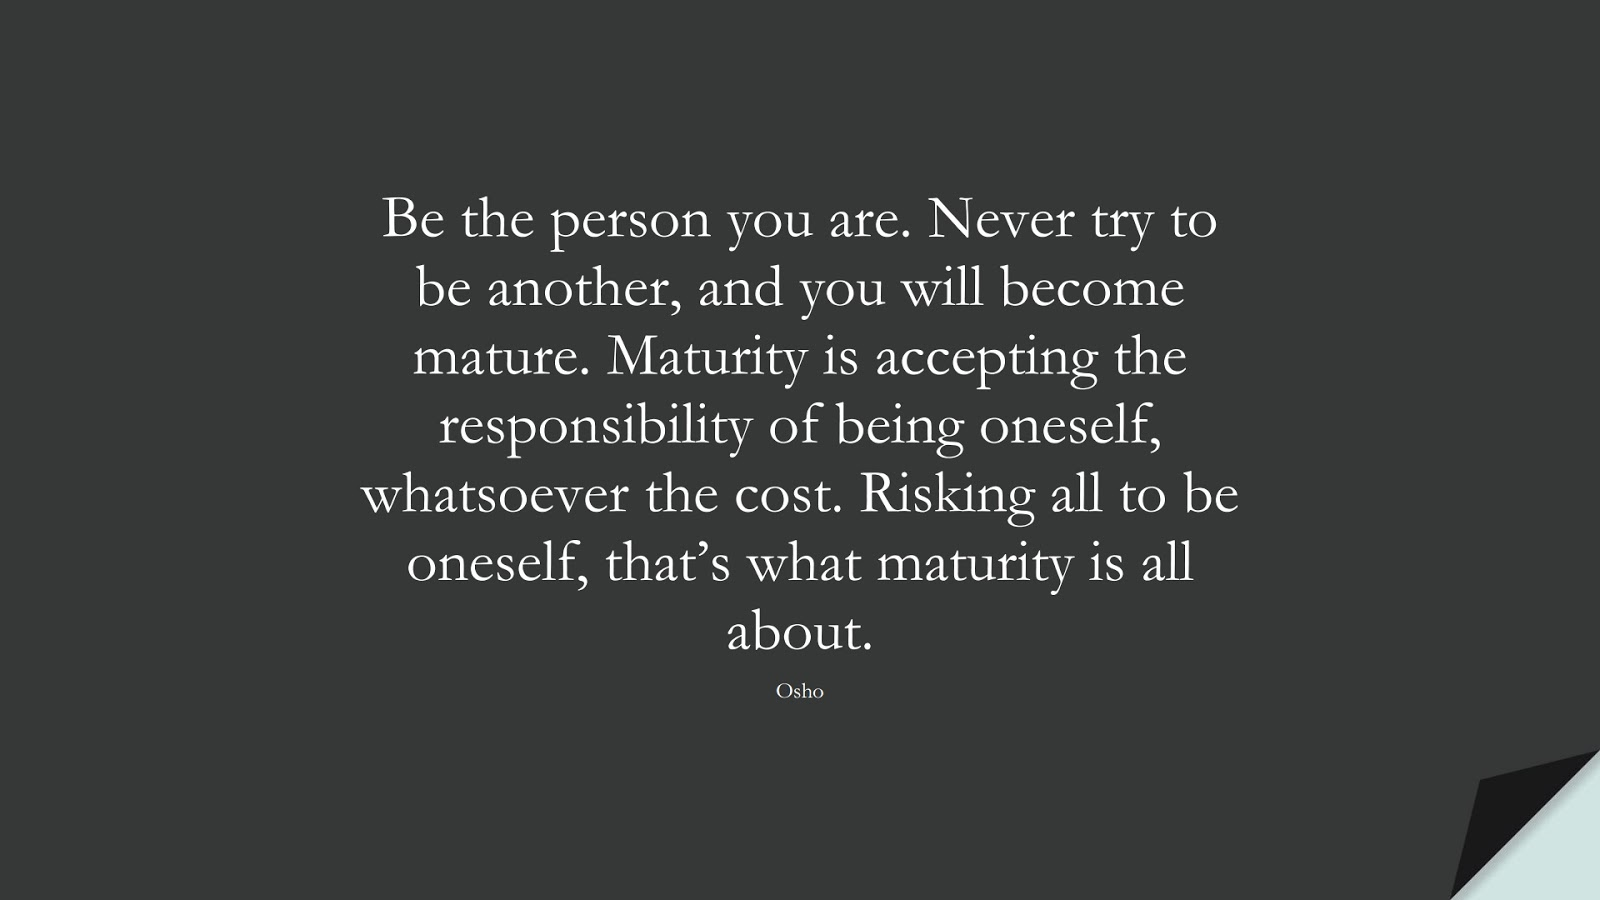 Be the person you are. Never try to be another, and you will become mature. Maturity is accepting the responsibility of being oneself, whatsoever the cost. Risking all to be oneself, that's what maturity is all about. (Osho);  #BeYourselfQuotes